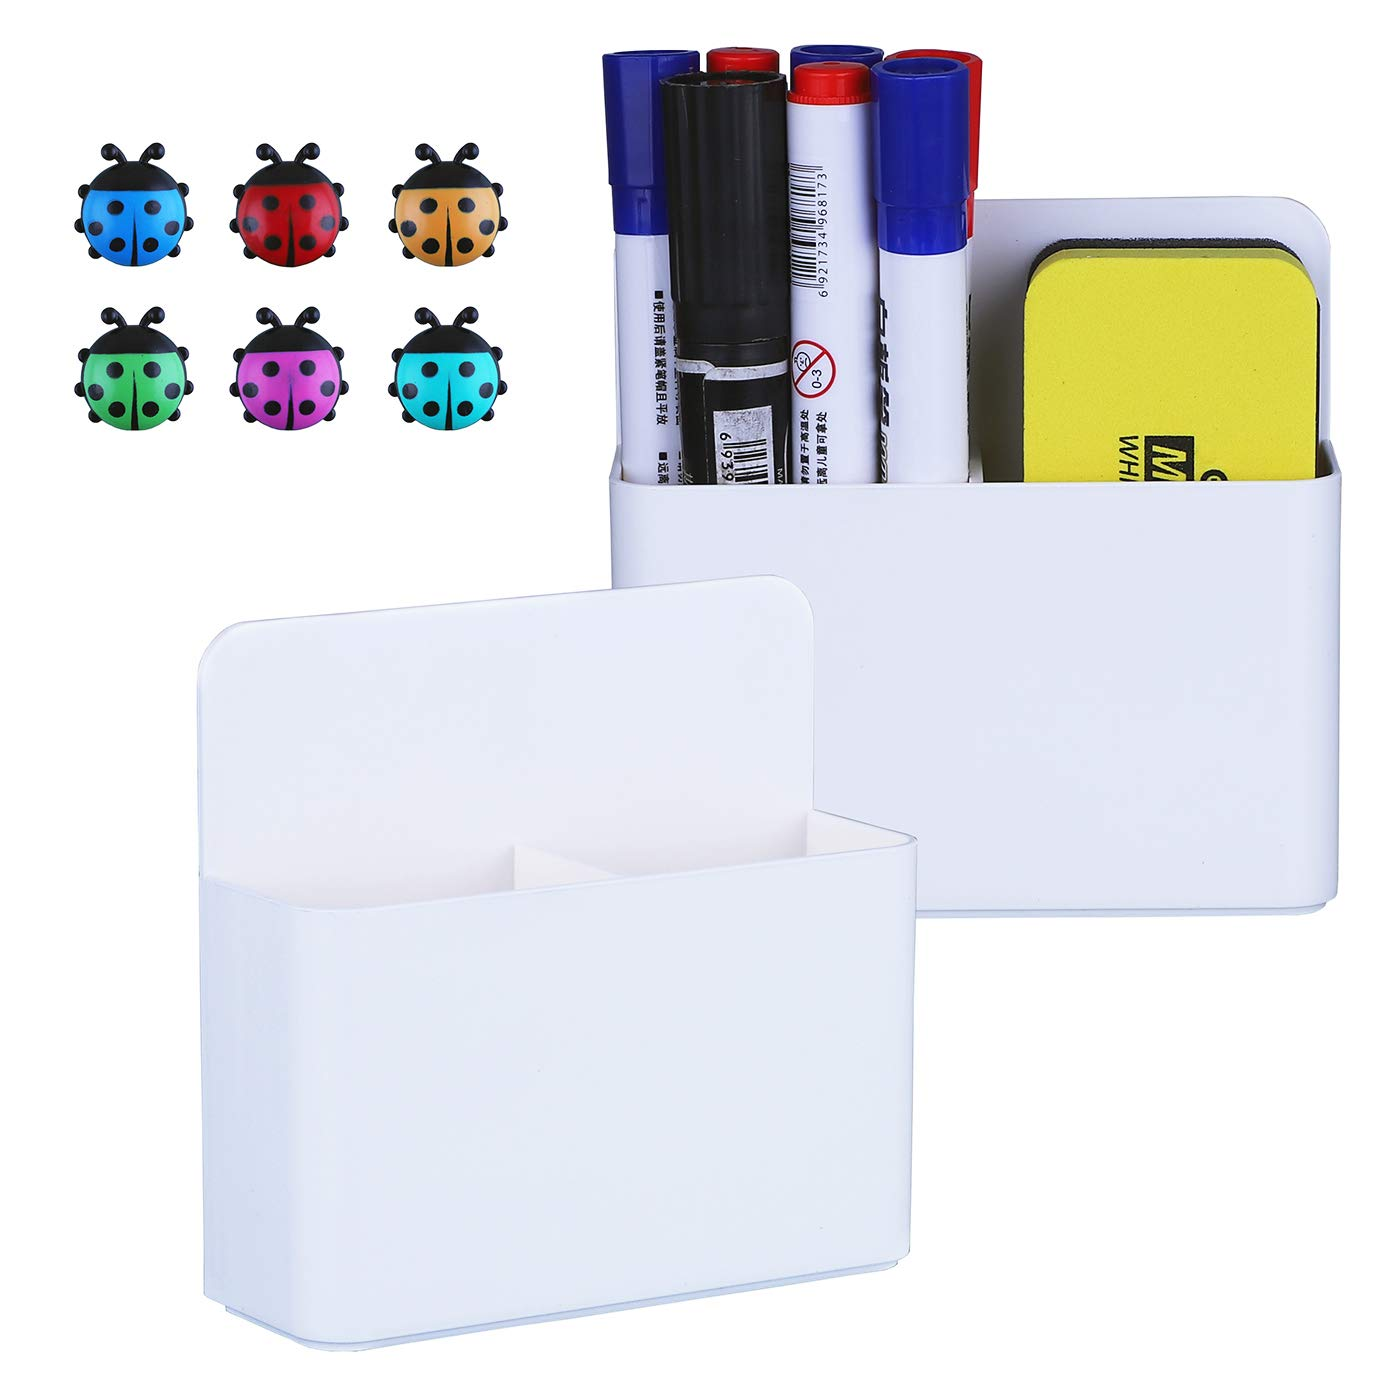 Antner 2 Pack Magnetic Dry Erase Marker Holders with Magnetic Push Pins, Dry Erase and Pen Storage Organizers for Whiteboard, Refrigerator, Metal Locker and Cabinets